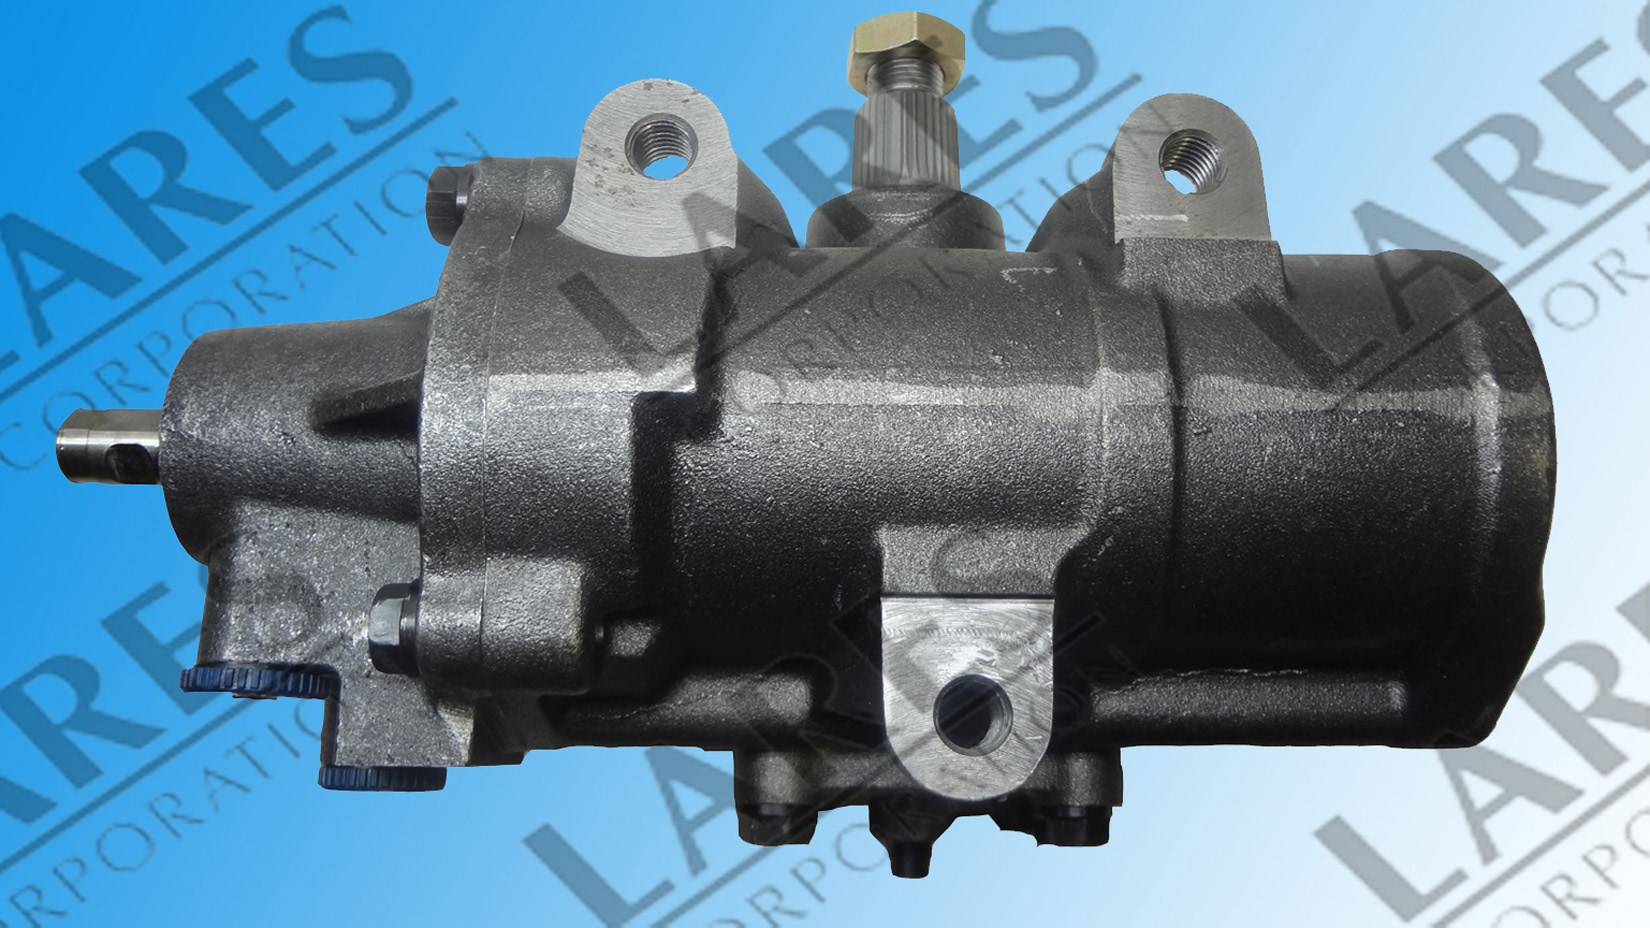 Power Steering Gear, Part No. 11422-a